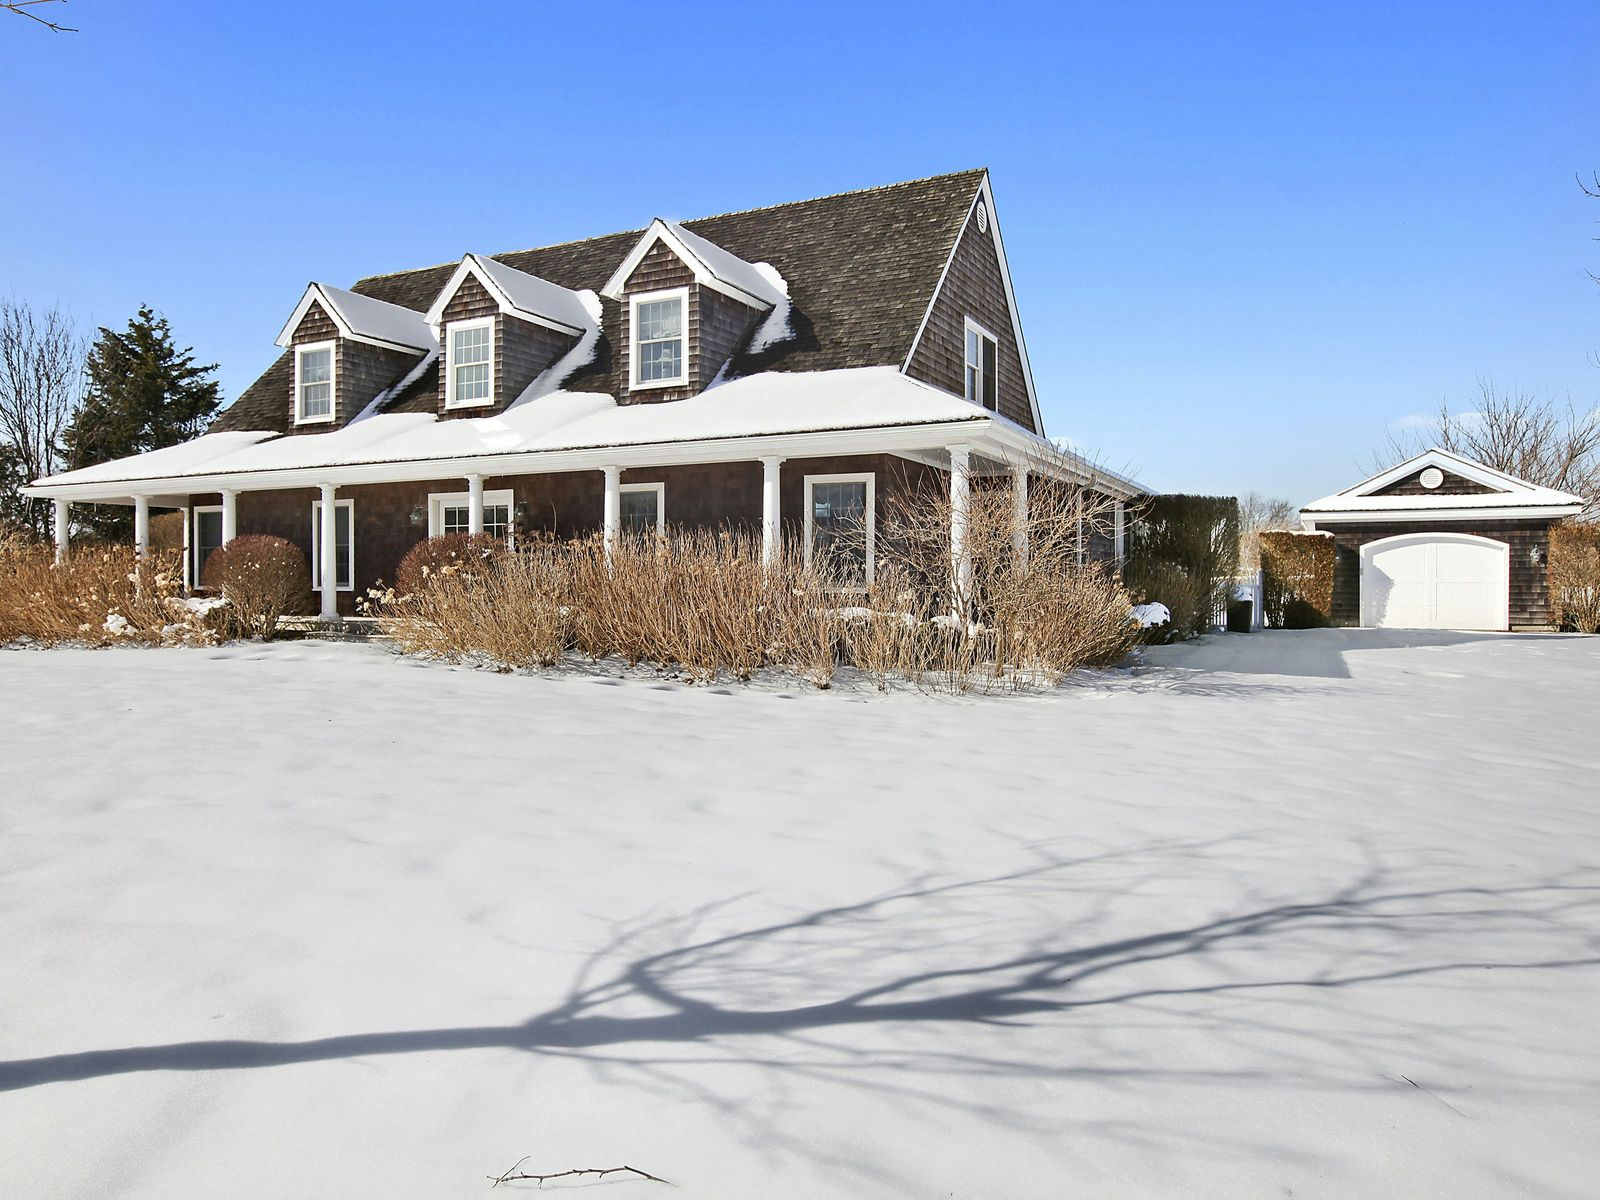 Secluded Traditional with Farm Vistas, Water Mill NY Single Family Home - Hamptons Real Estate